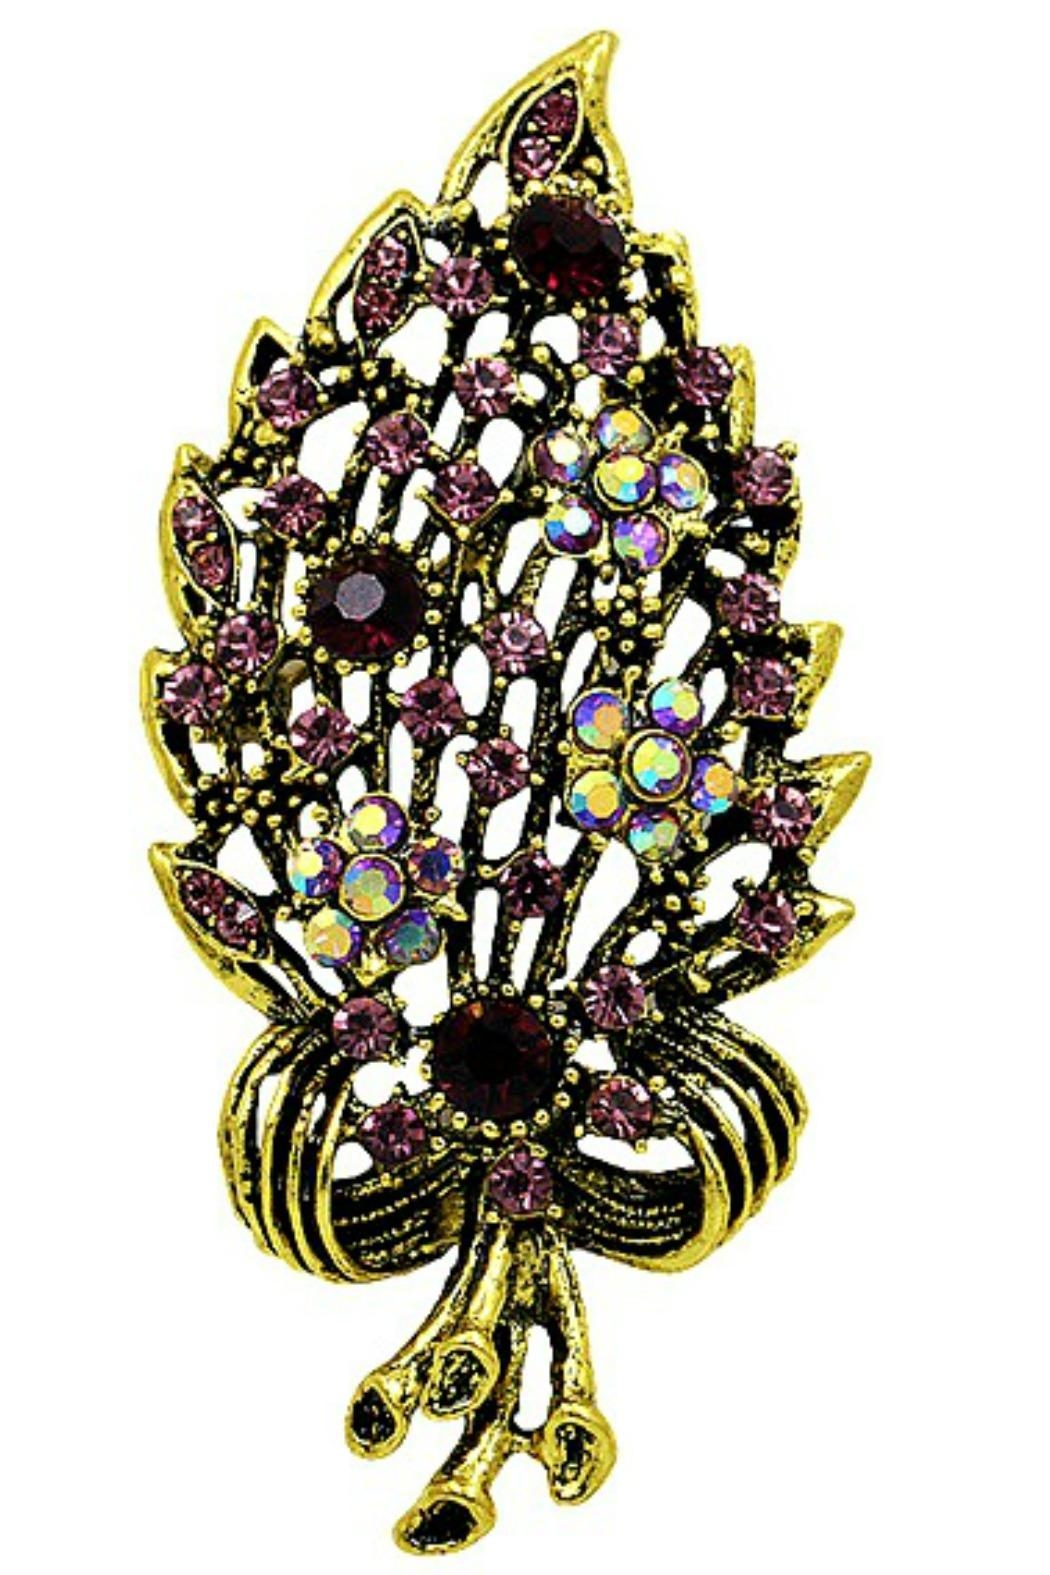 pend bead brooch goossens pour gilt laurent saint ysl metal pendant as jewel yves and worn fantasy